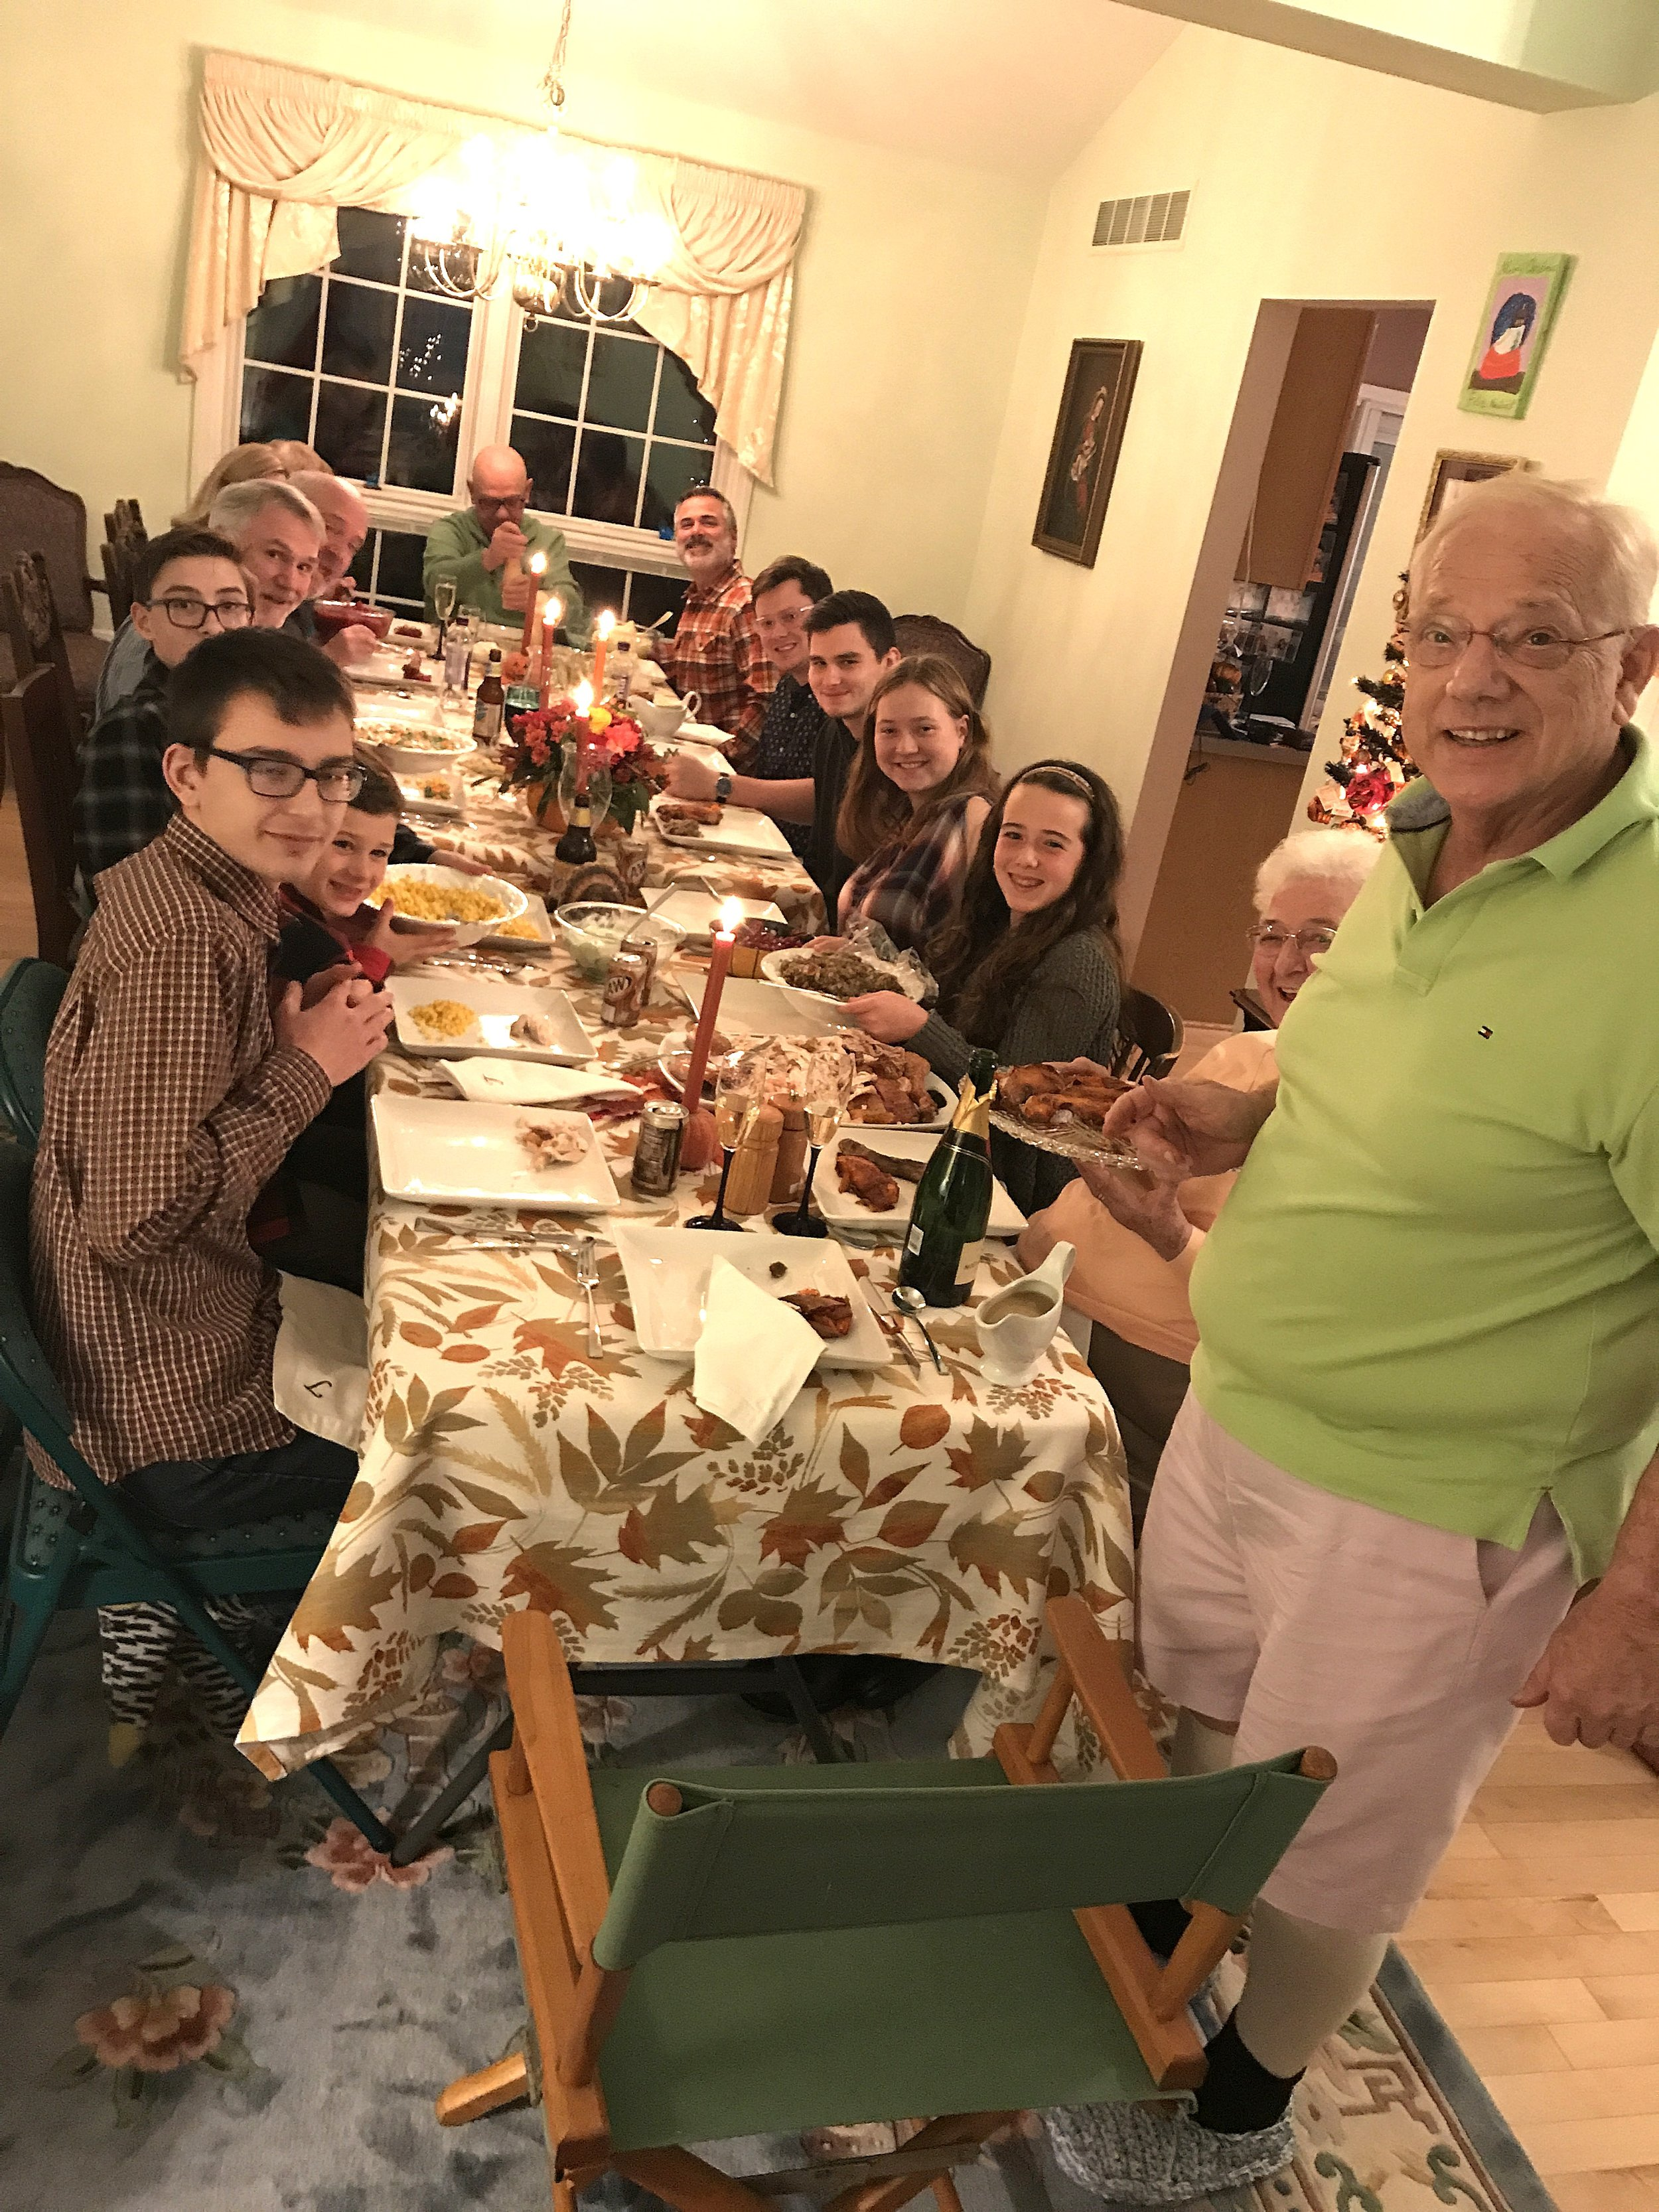 Our family gathered around the Thanksgiving table.